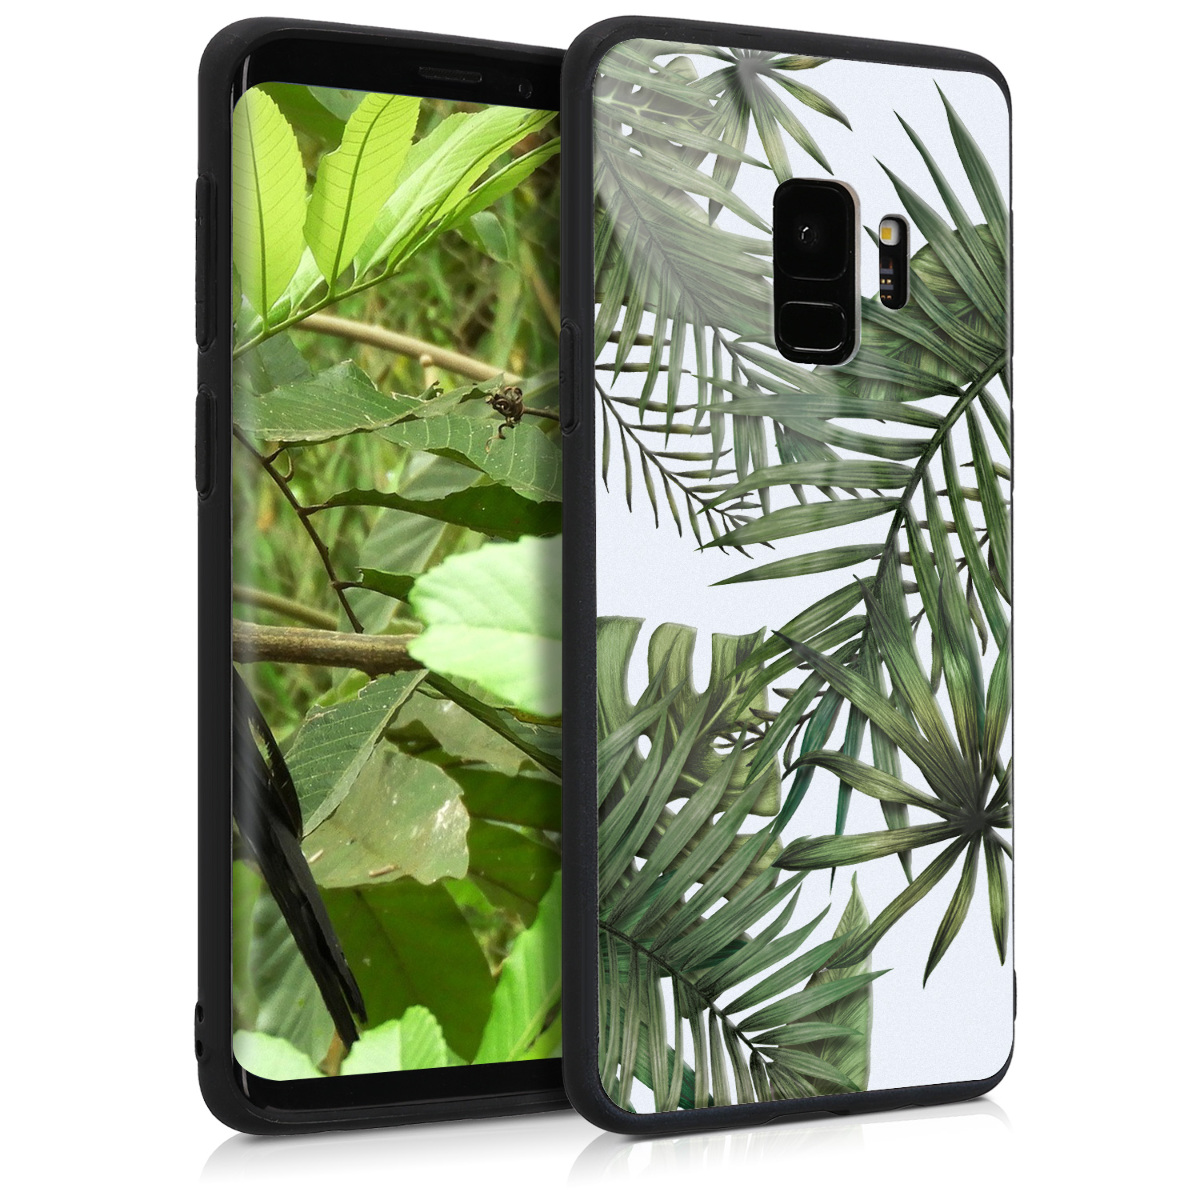 HardPouzdro pro Samsung Galaxy S9 Smartphone - 3D Print Hybrid PC / TPU Back Cover - Palm Leaves Green / White